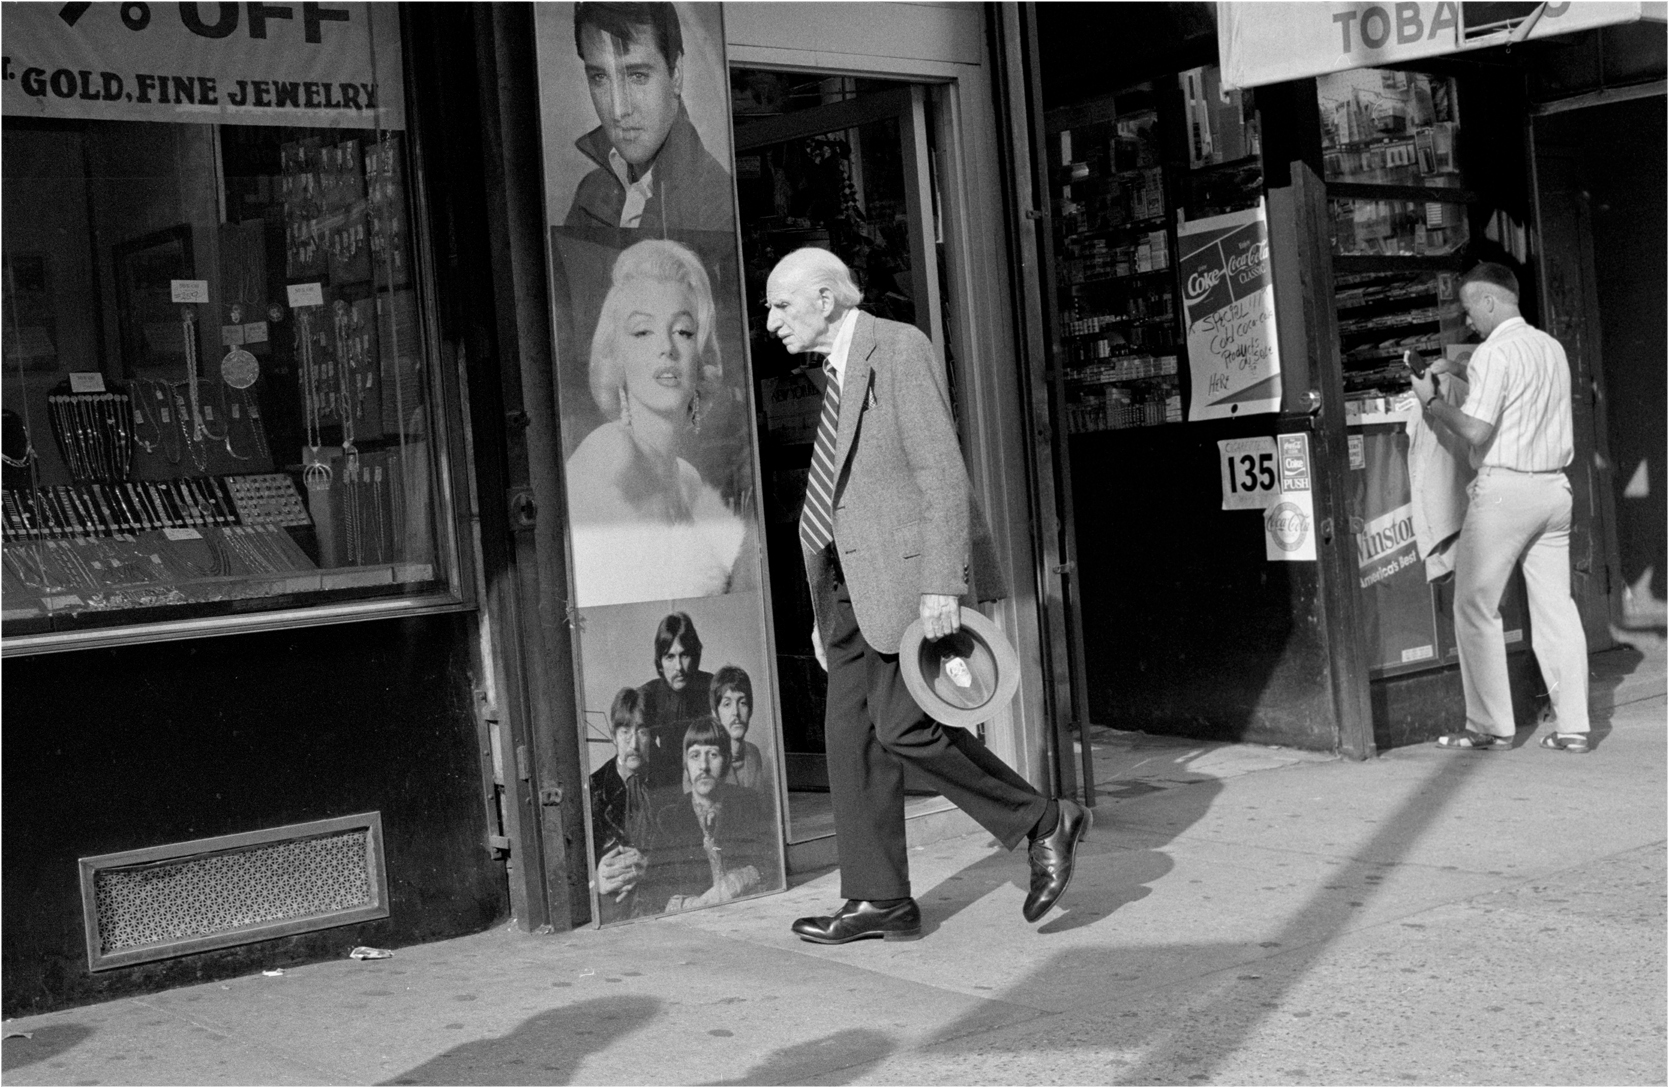 Elvis Marilyn Monroe Marilyn Monroe Black And White Street Photographs Of New York